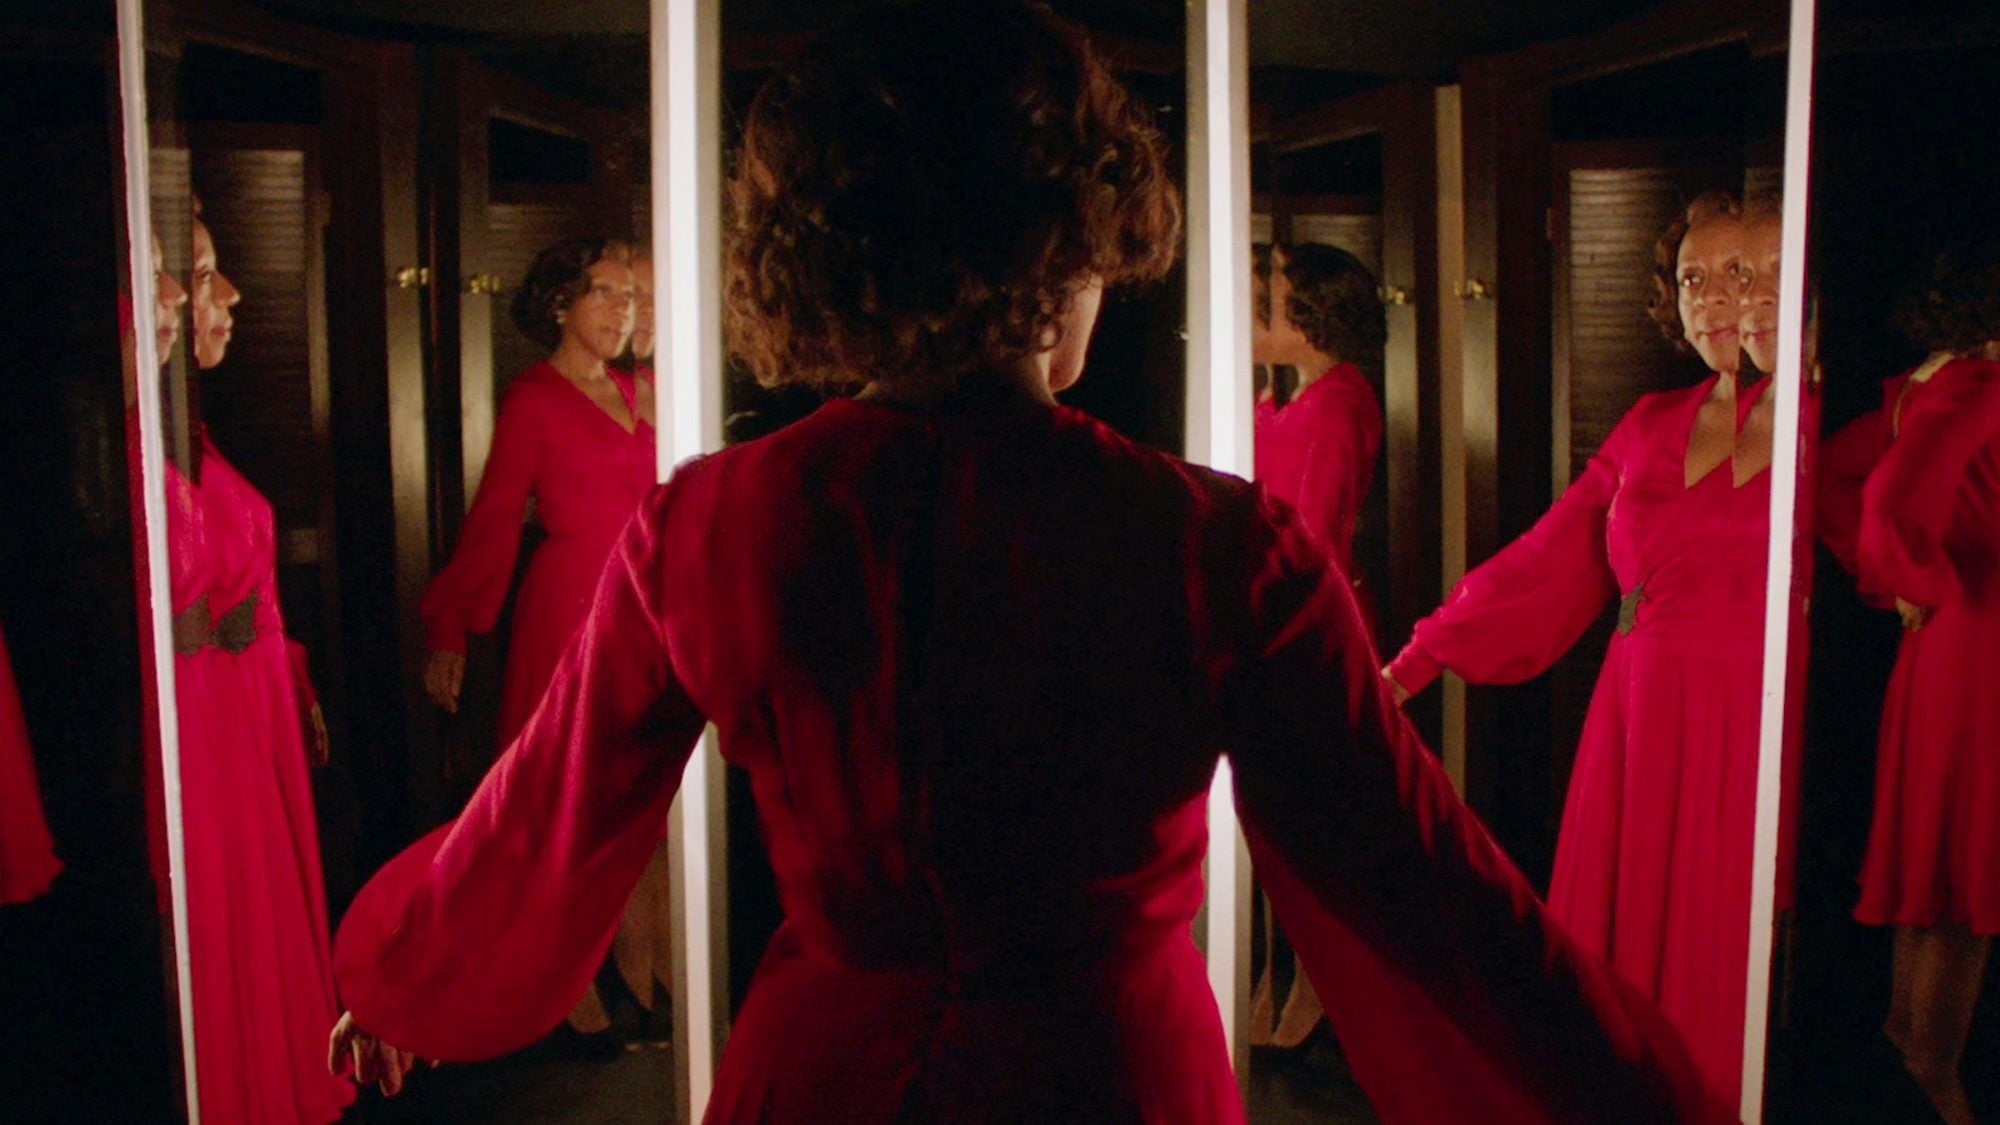 Watch In Fabric's First Dizzying Trailer, Where Serving Looks Kills